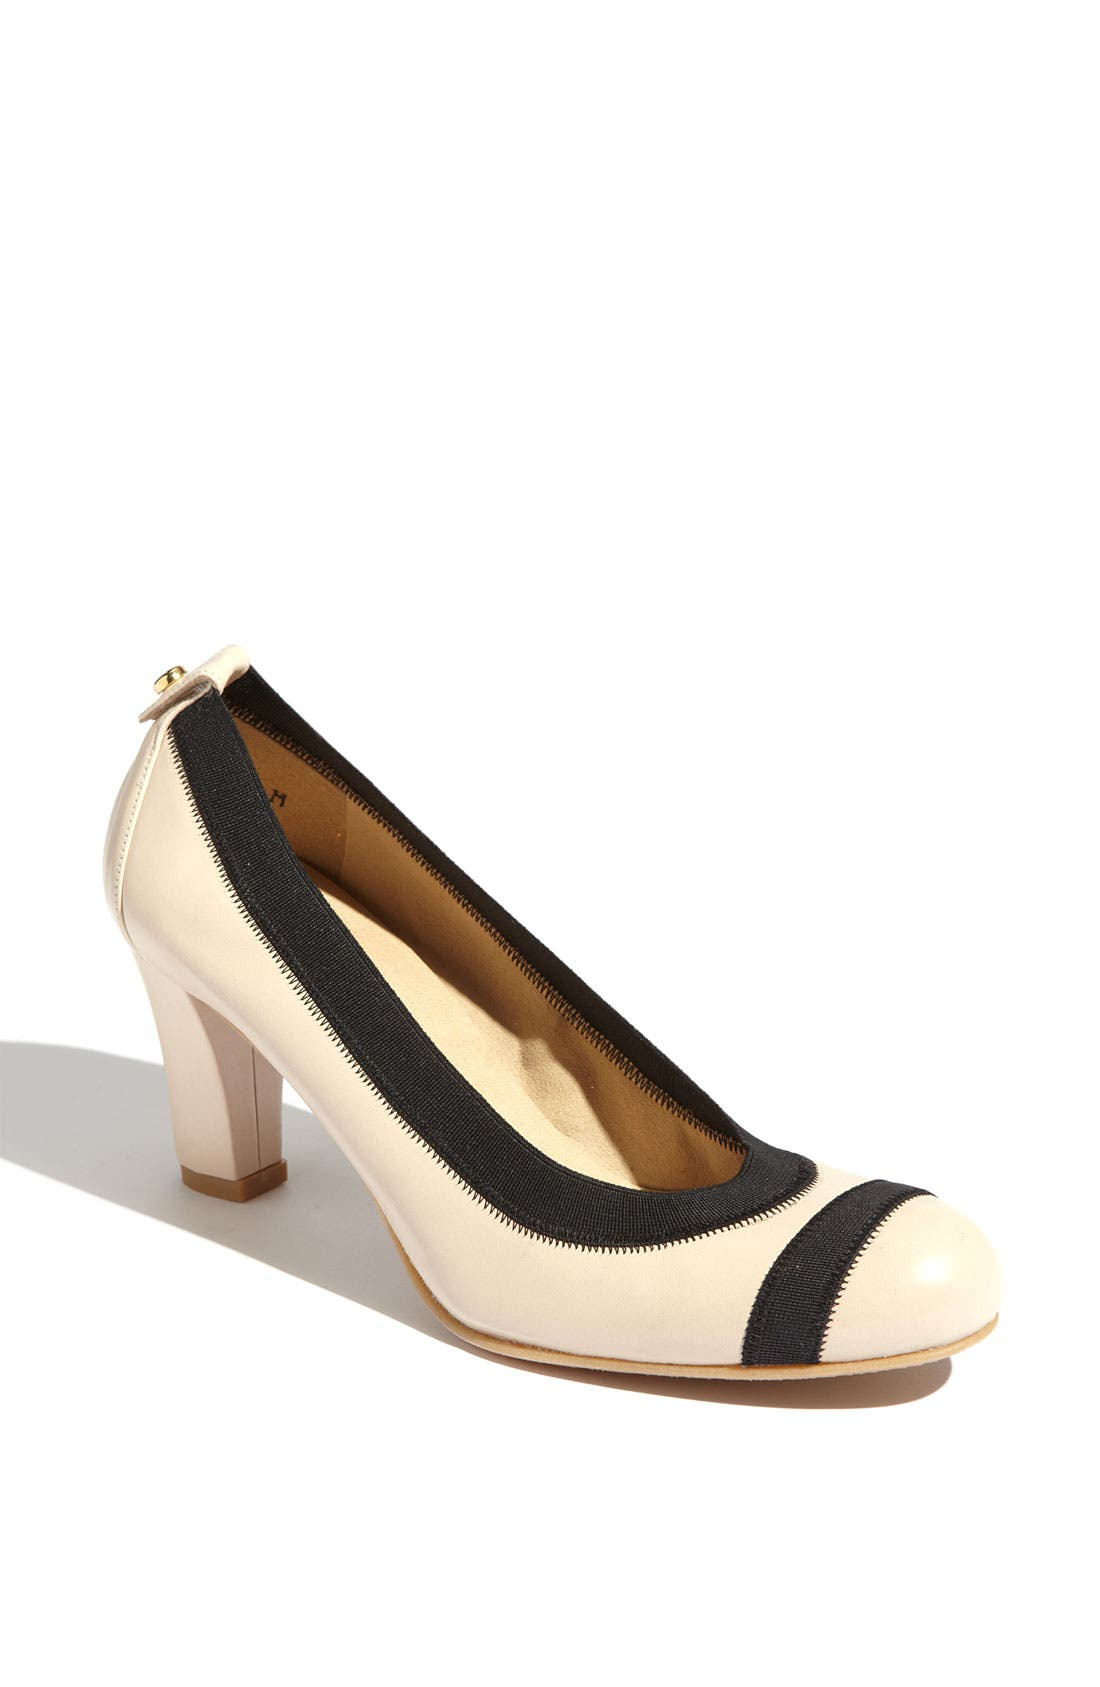 Alternate Image 1 Selected - Stuart Weitzman 'Easily' Pump